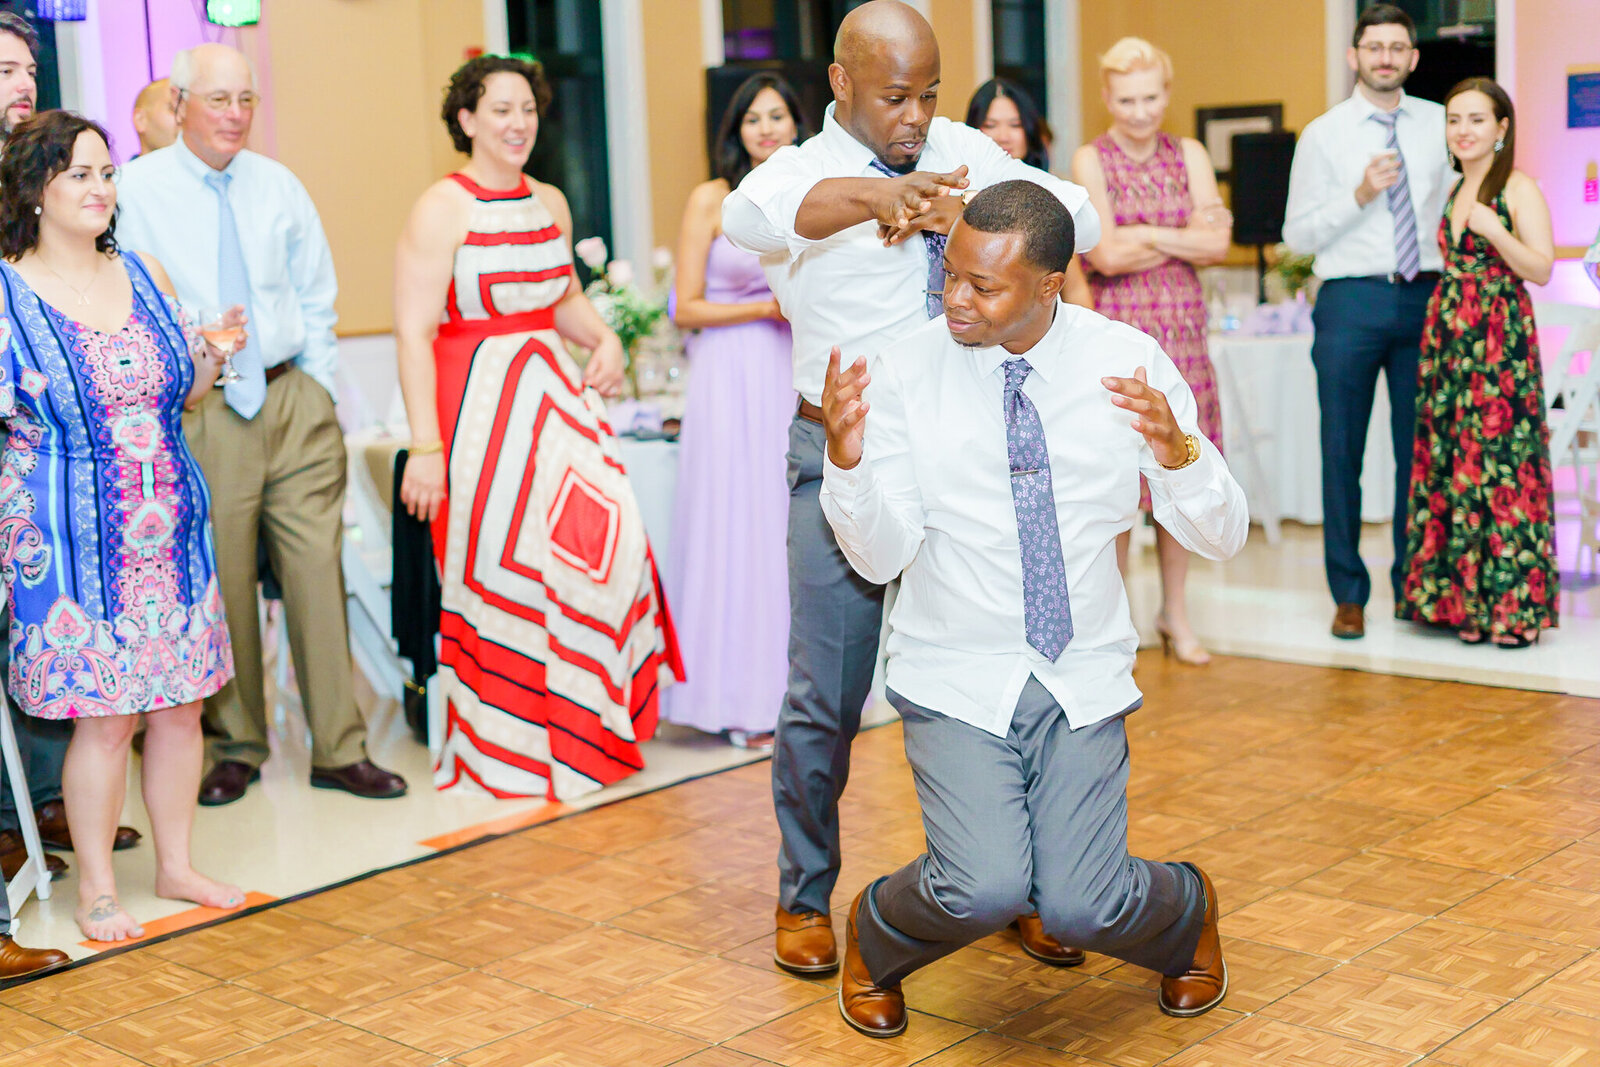 New England Area Wedding Reception Dancing on Dance Floor